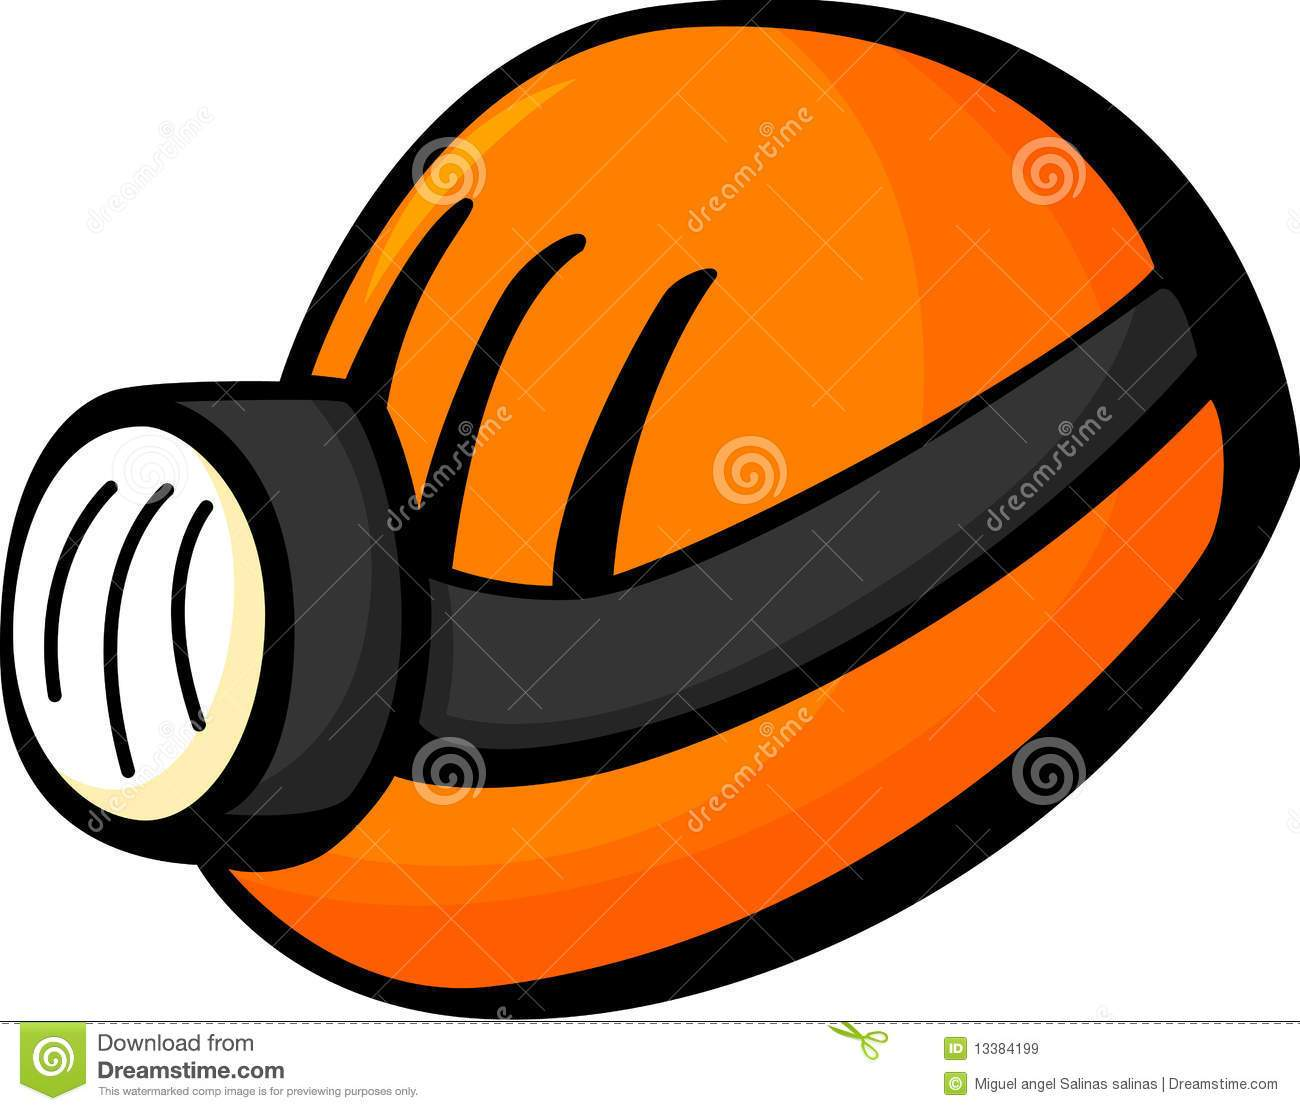 Miner hat clipart picture free download Miner hat clipart 6 » Clipart Portal picture free download